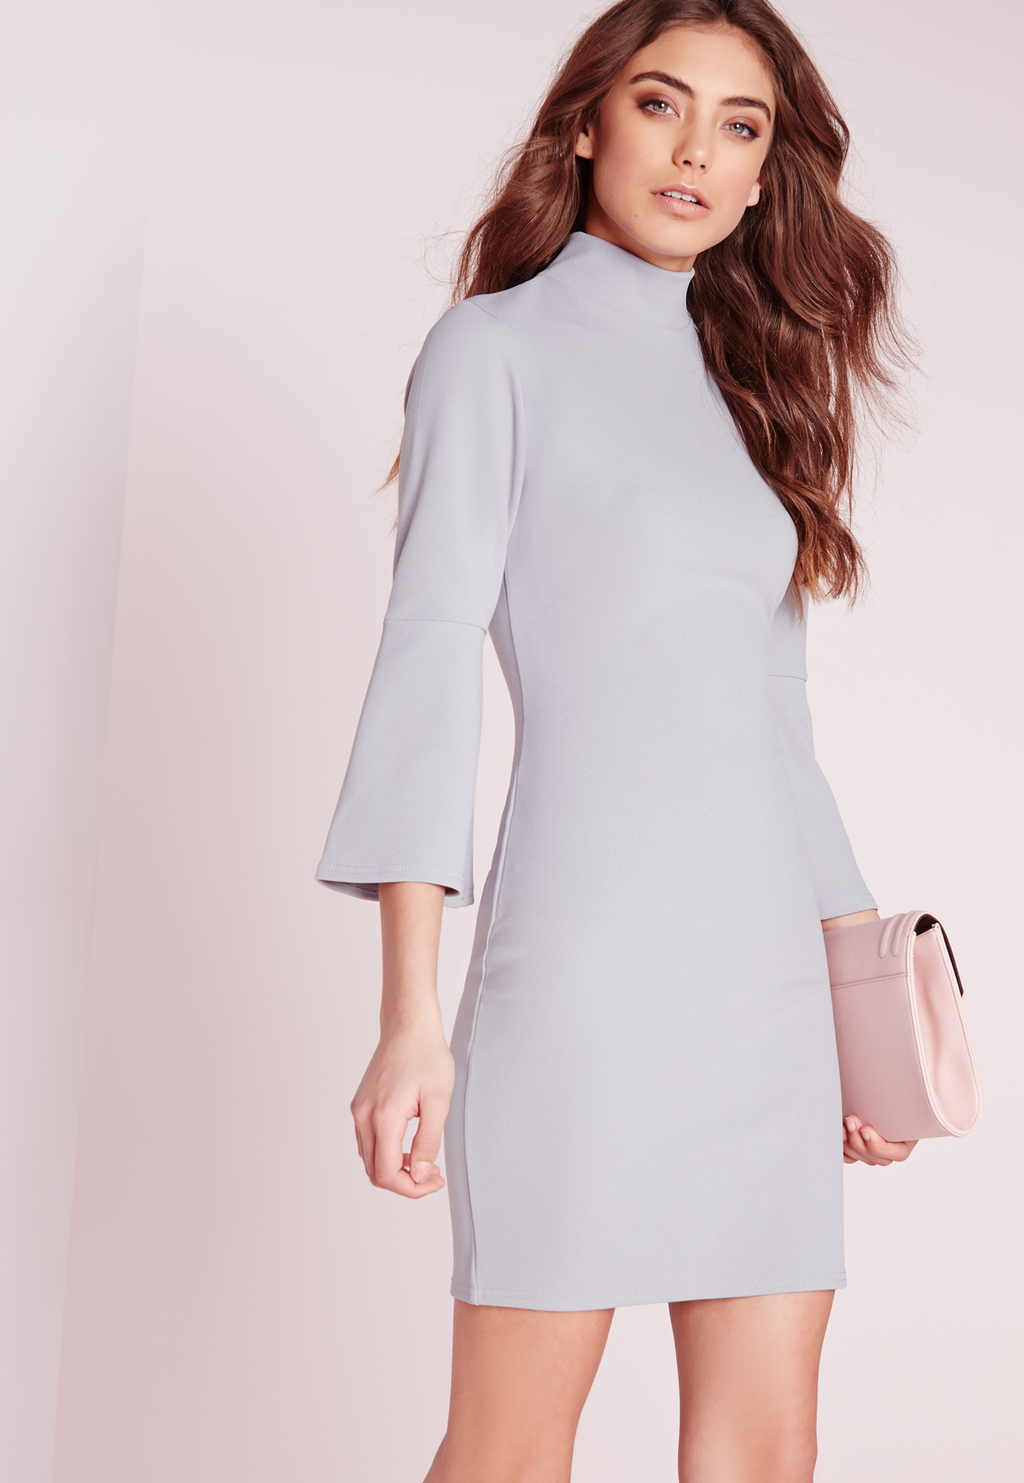 Fluted Sleeve Bodycon Dress Ice Grey, Ice Grey - style: jumper dress; length: mid thigh; pattern: plain; neckline: high neck; hip detail: fitted at hip; predominant colour: light grey; occasions: evening; fit: body skimming; fibres: polyester/polyamide - stretch; sleeve length: 3/4 length; sleeve style: standard; pattern type: fabric; texture group: other - light to midweight; season: s/s 2016